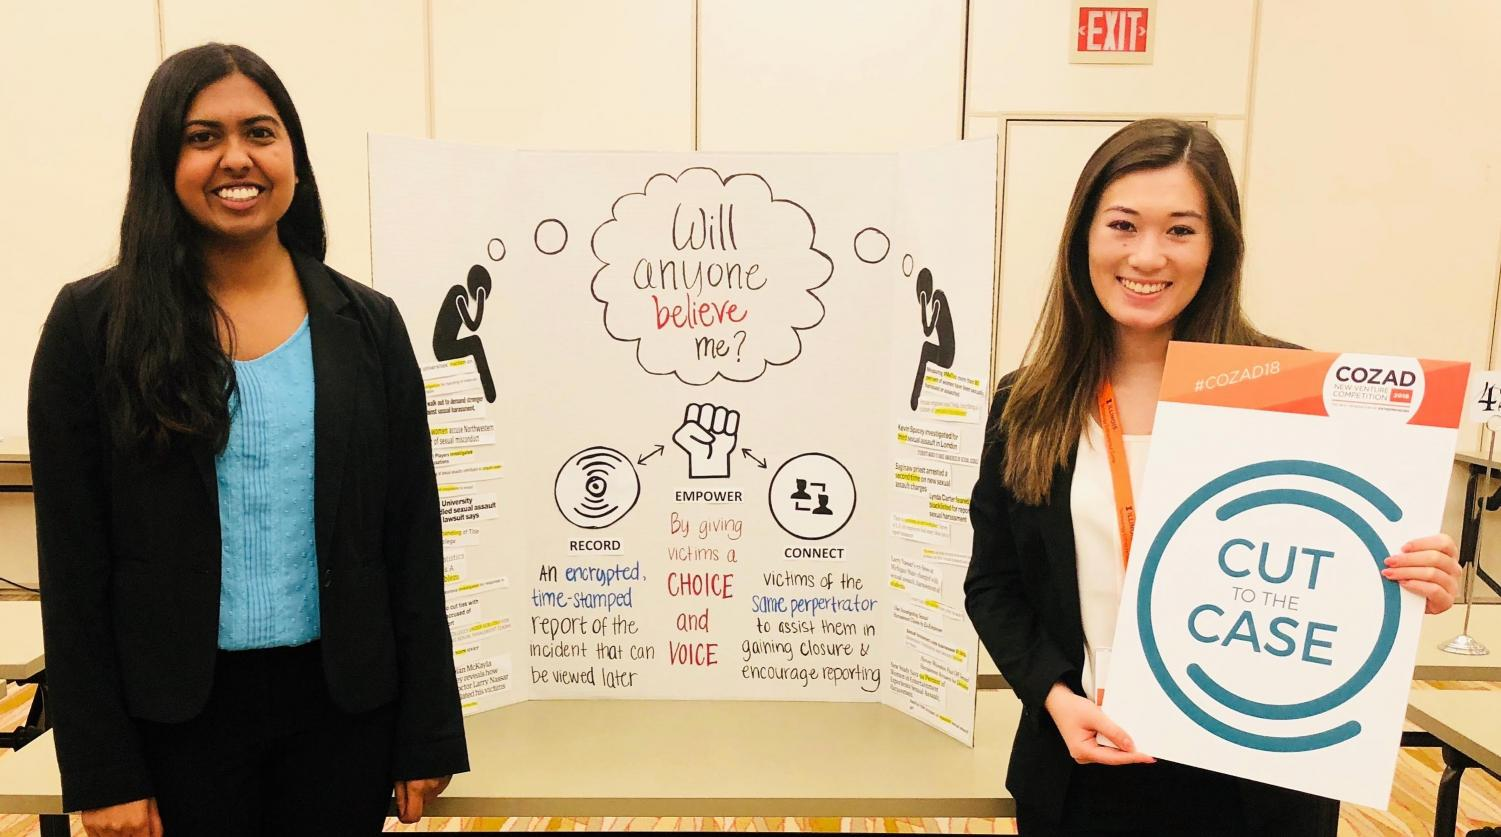 Premika Pandian, left, and Kendall Furbee, right, stand in front of their presentation at the Cozad New Venture Competition at the University in April. Their start-up, Cut to the Case, received a prize of $5,000 for Social Innovation at the competition with their creation of an online platform that would crowd-source crime reports to increase campus safety.